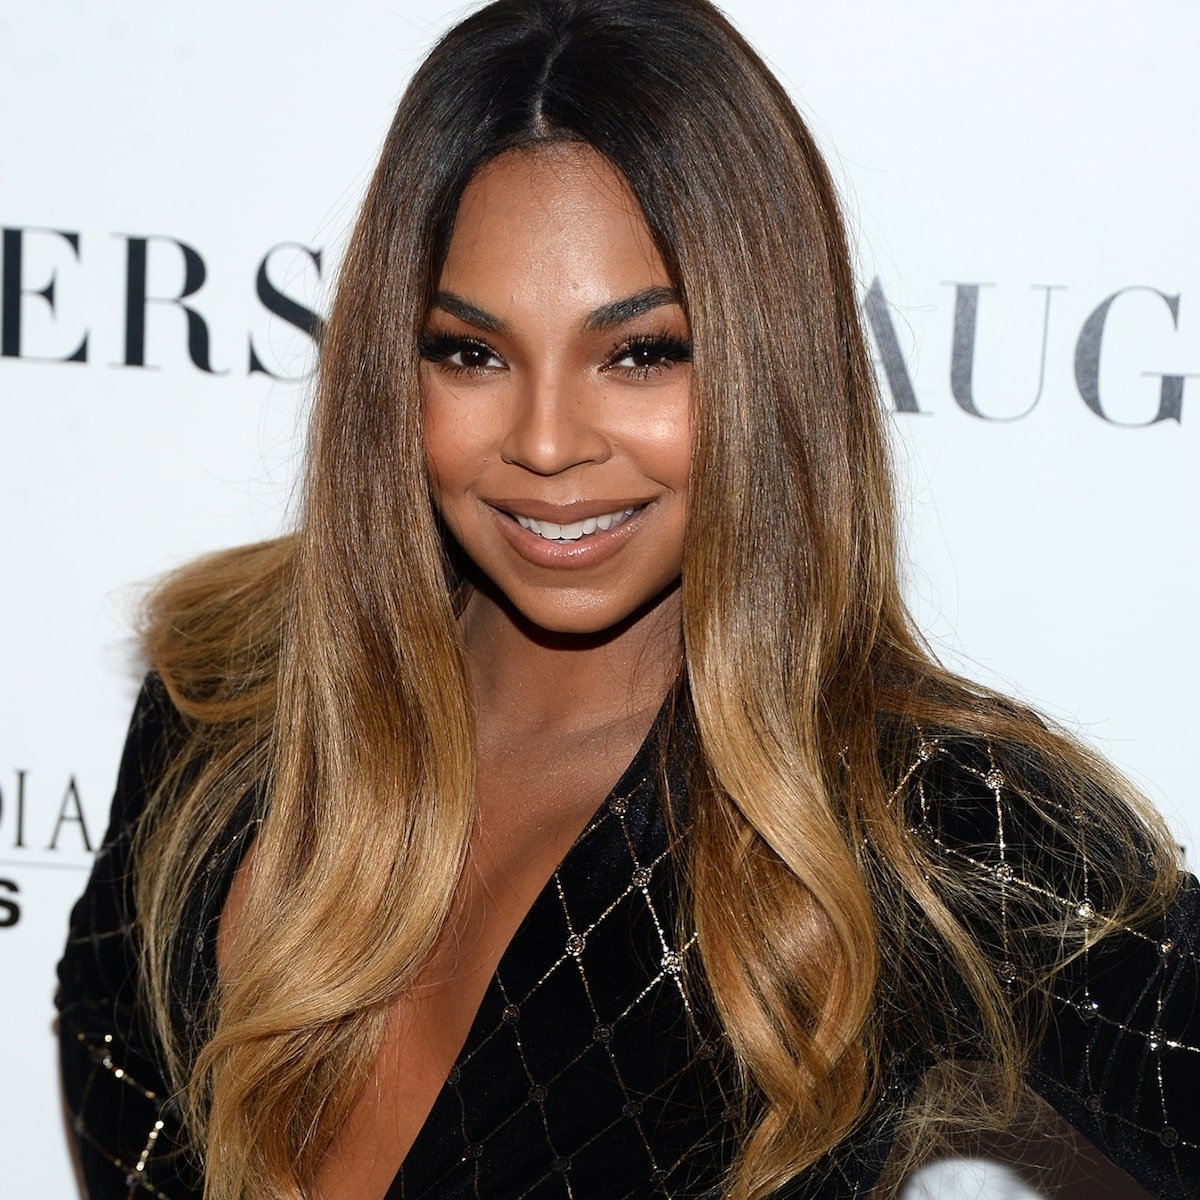 Ashanti Announces She Is Covid Free — Fans Ecstatic As They Await Rescheduled Versus